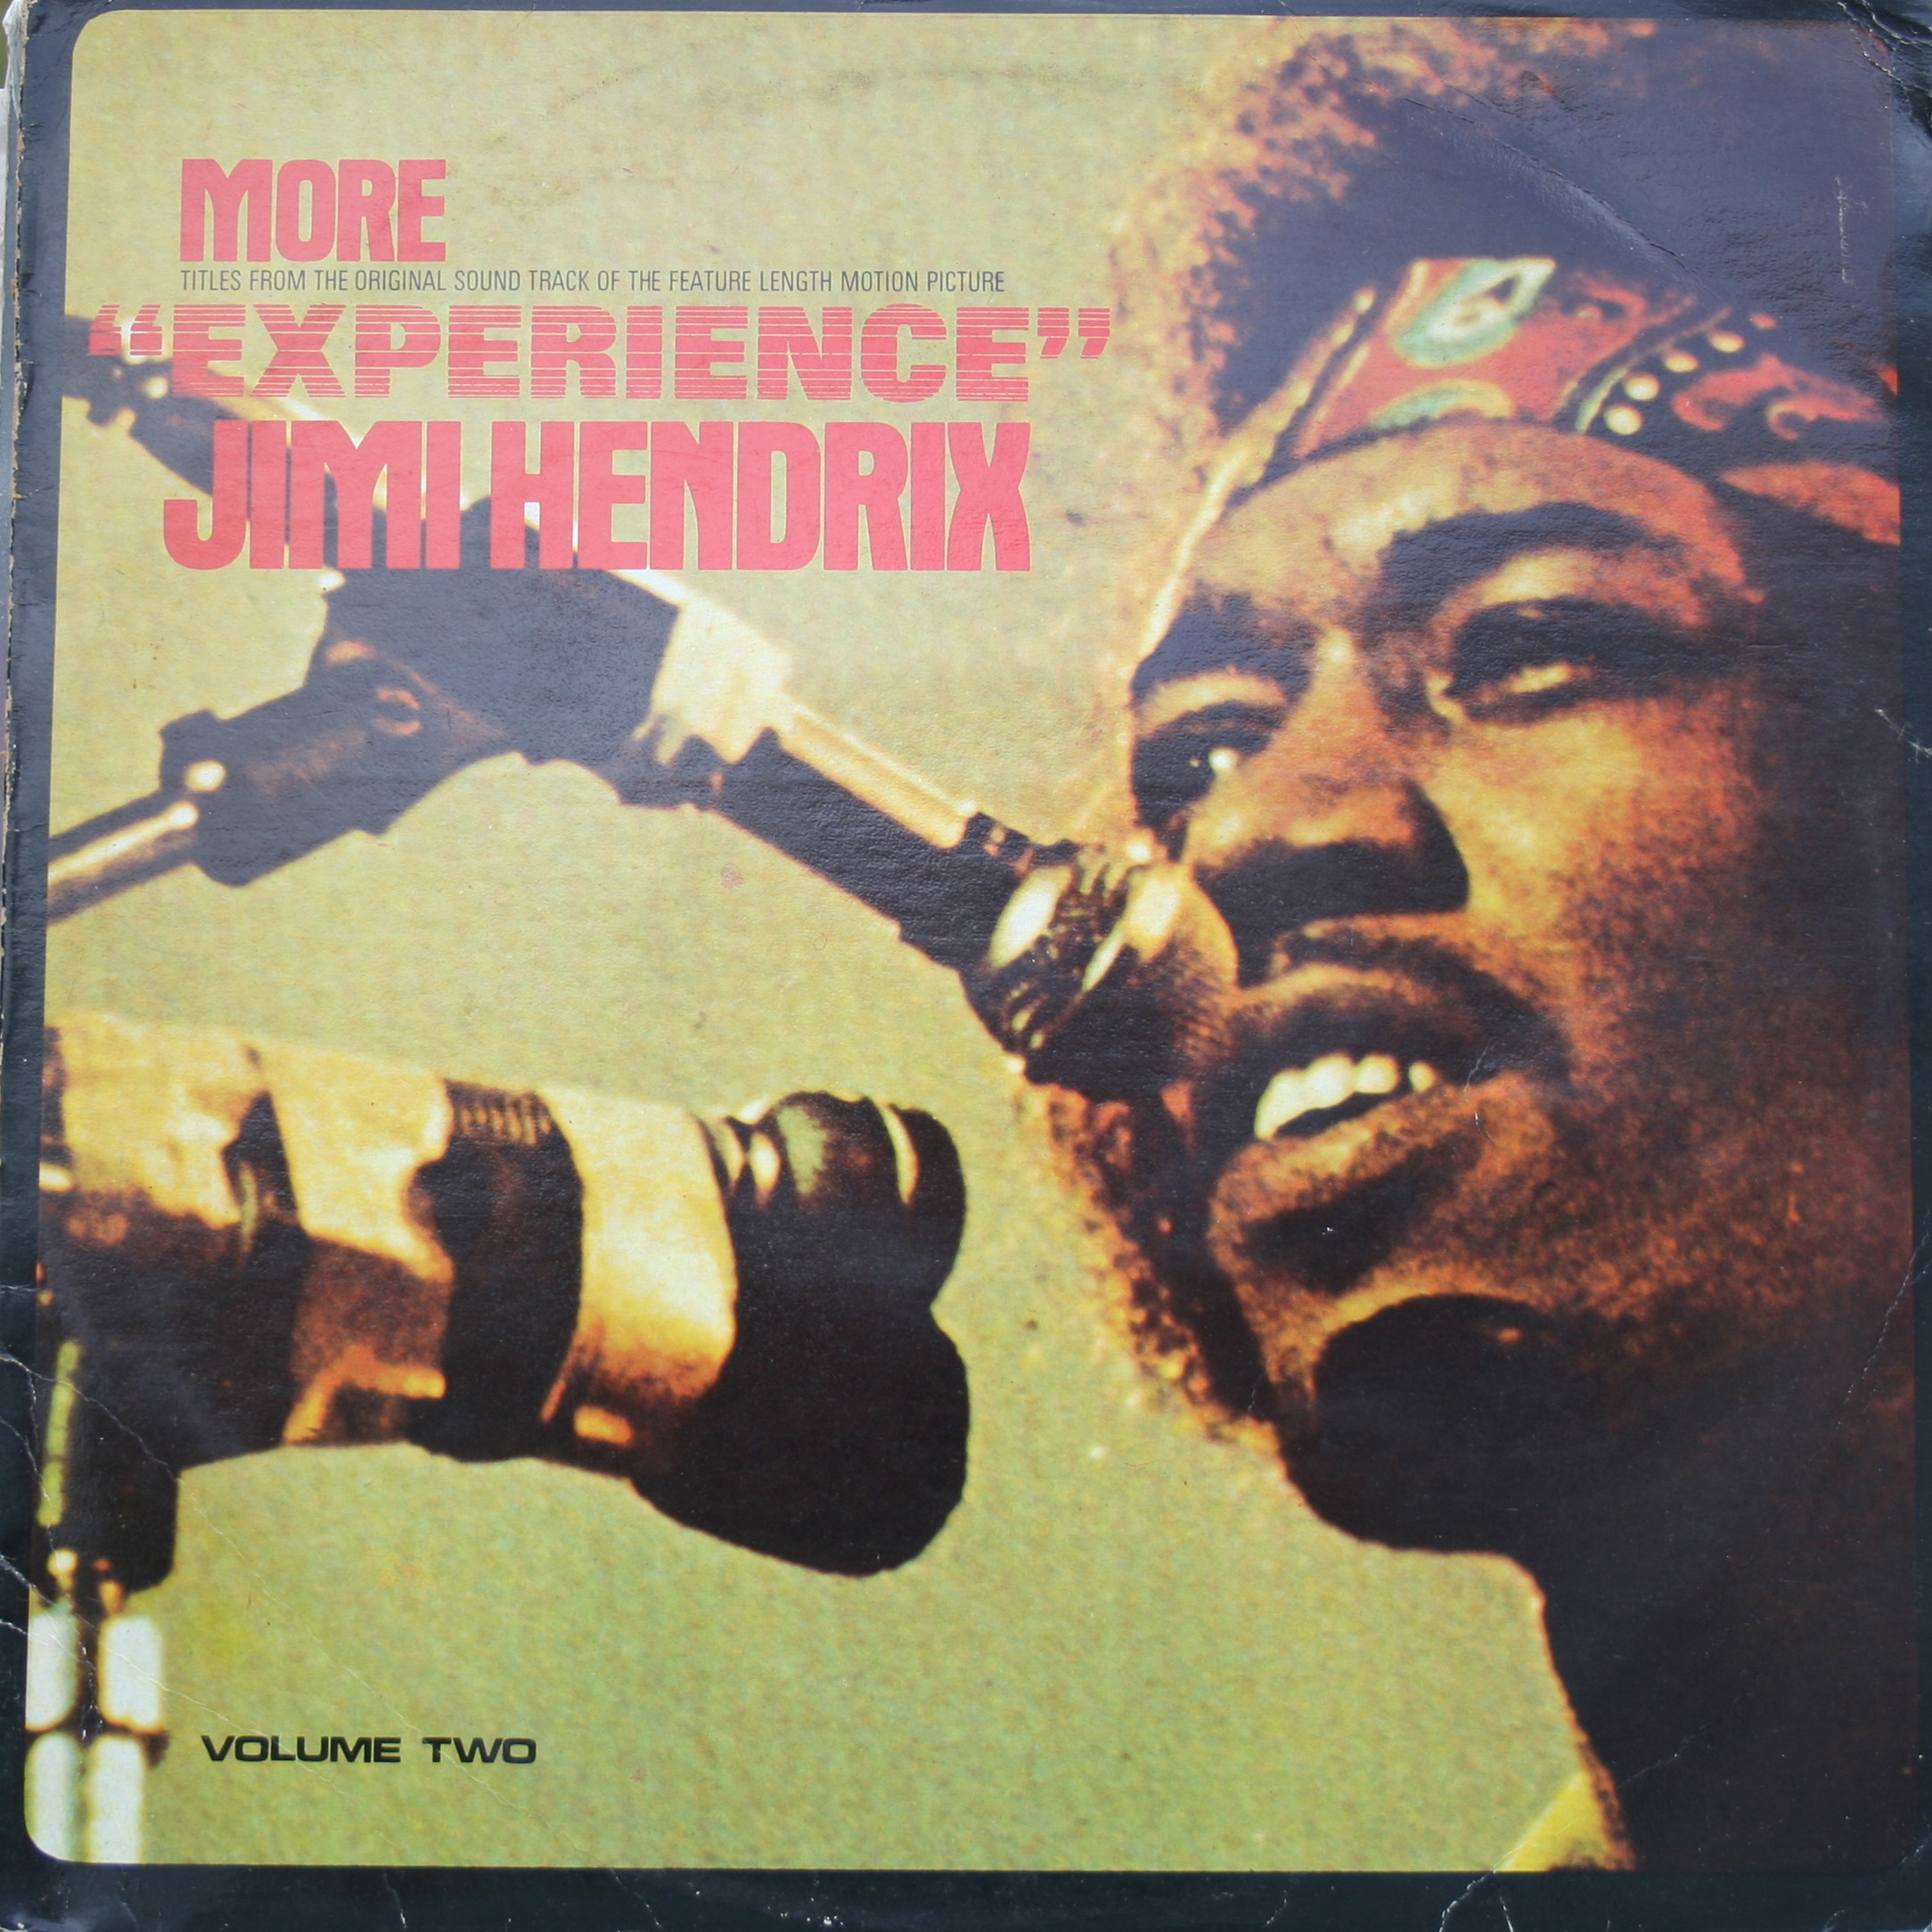 Experience Hendrix The Best Of Jimi Hendrix Jimi Hendrix: Jimi Hendrix Images Jimi Hendrix Album Covers HD Wallpaper